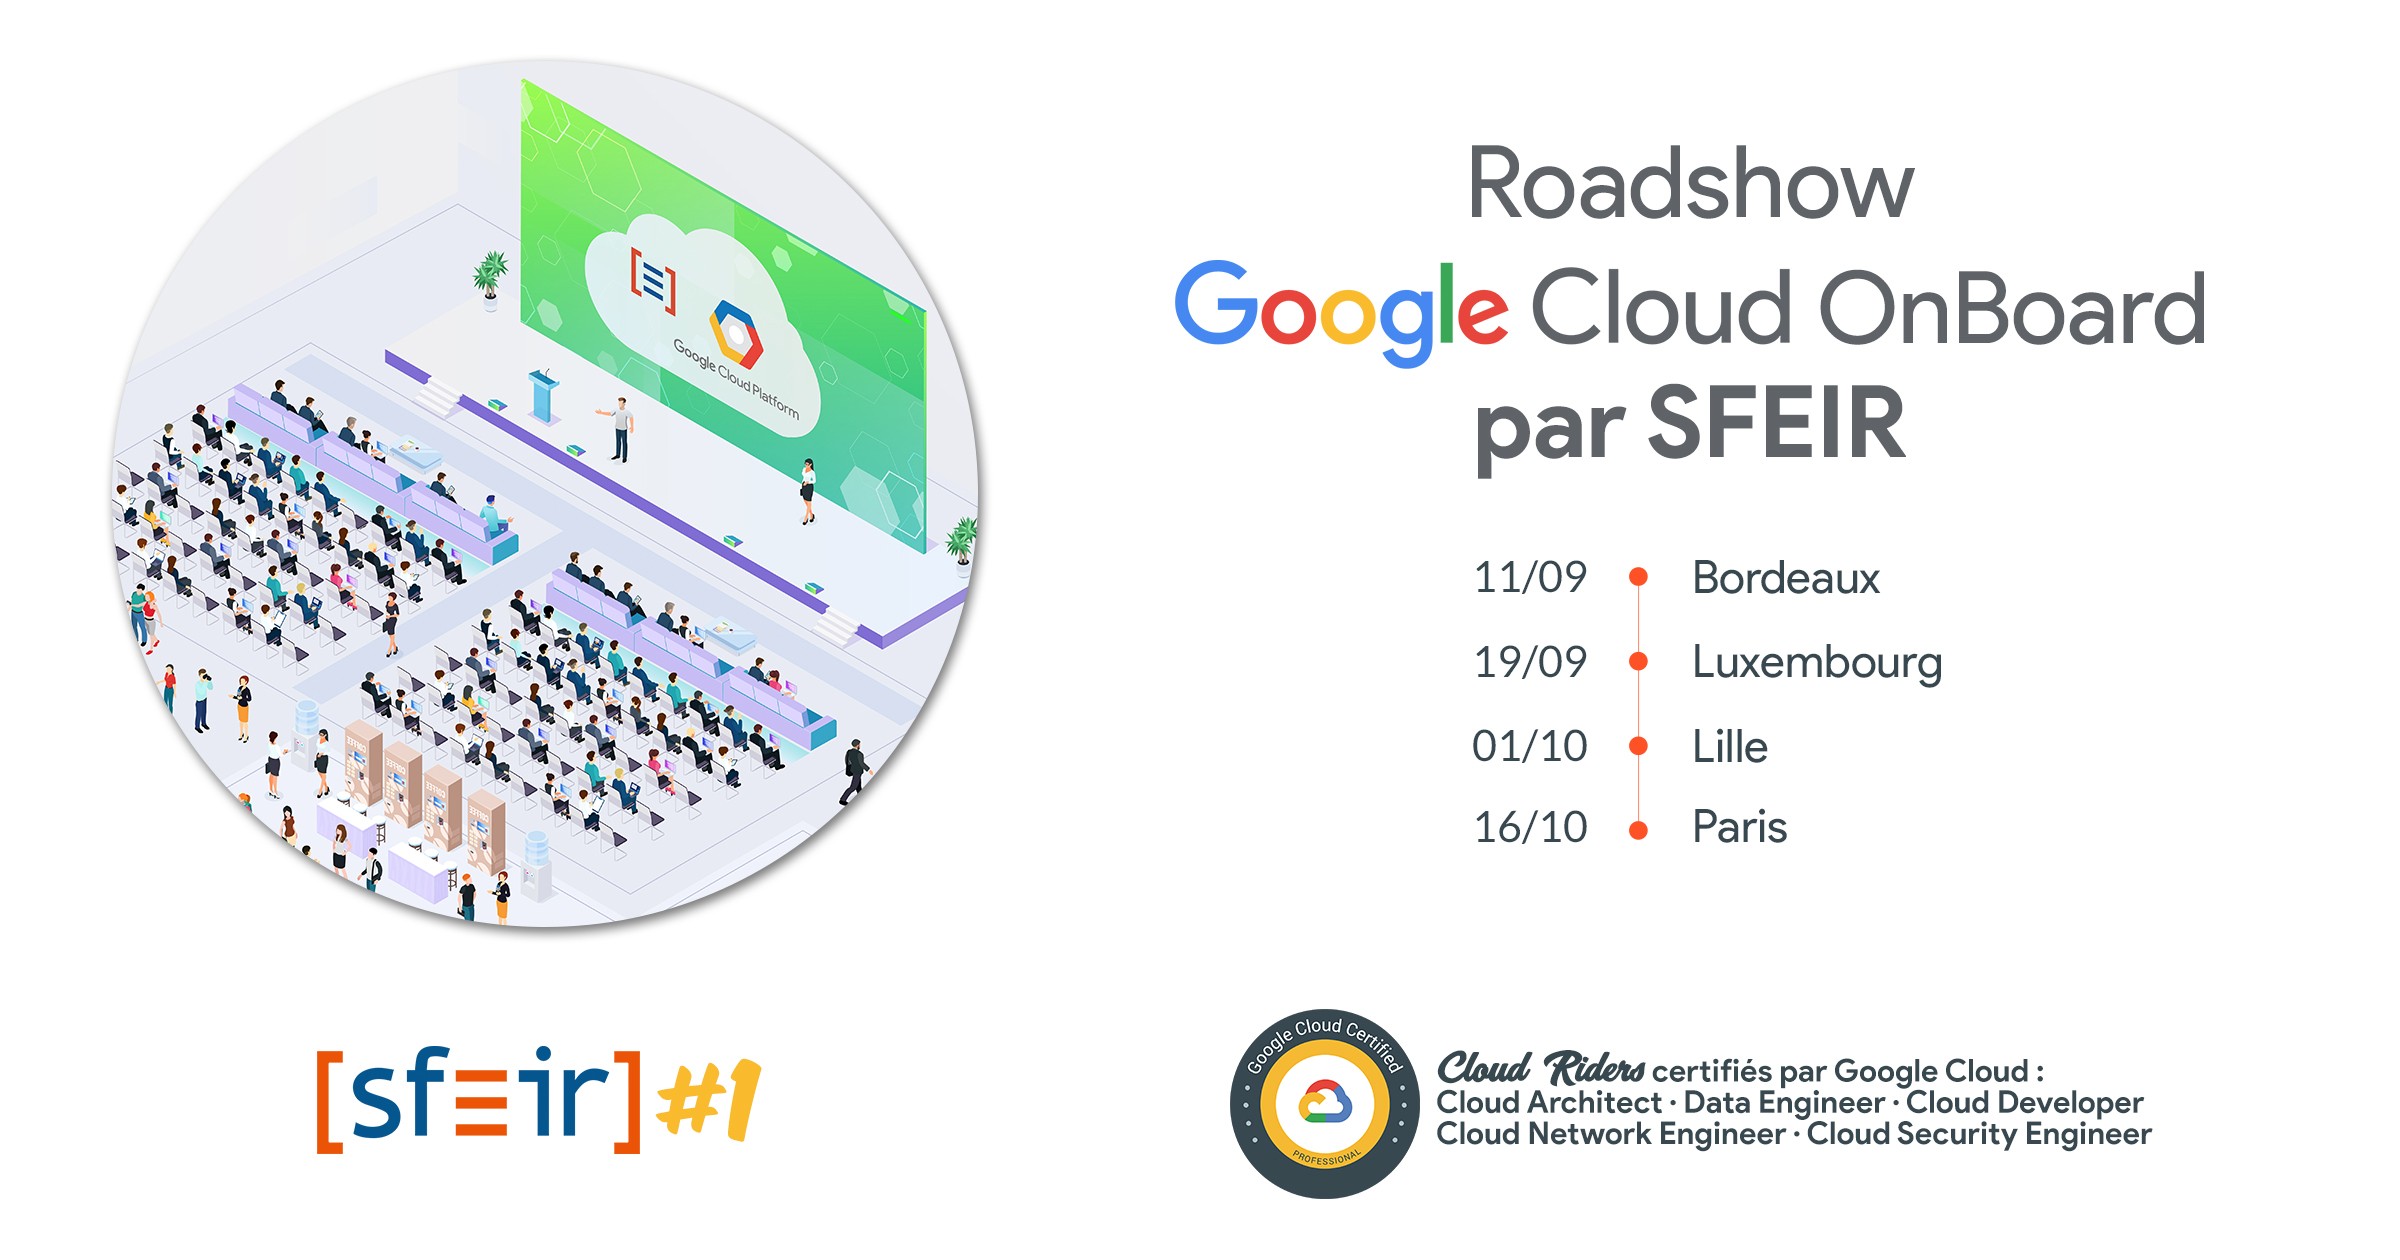 Roadshow Google Cloud OnBoard par SFEIR